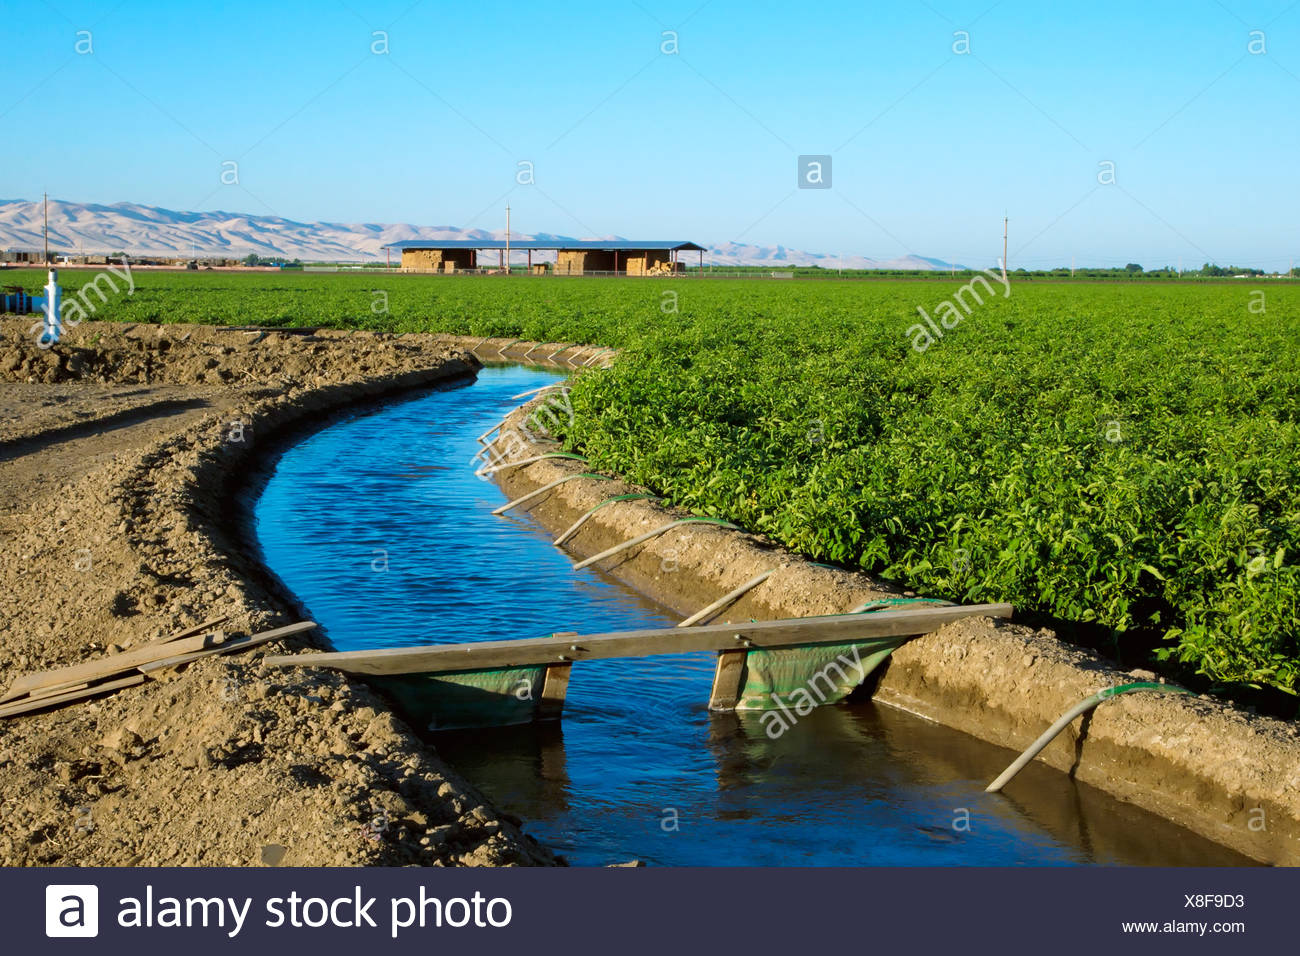 Agriculture - Irrigation canal running alongside a fresh market tomato field that is being irrigated utilizing siphon tubes. - Stock Image